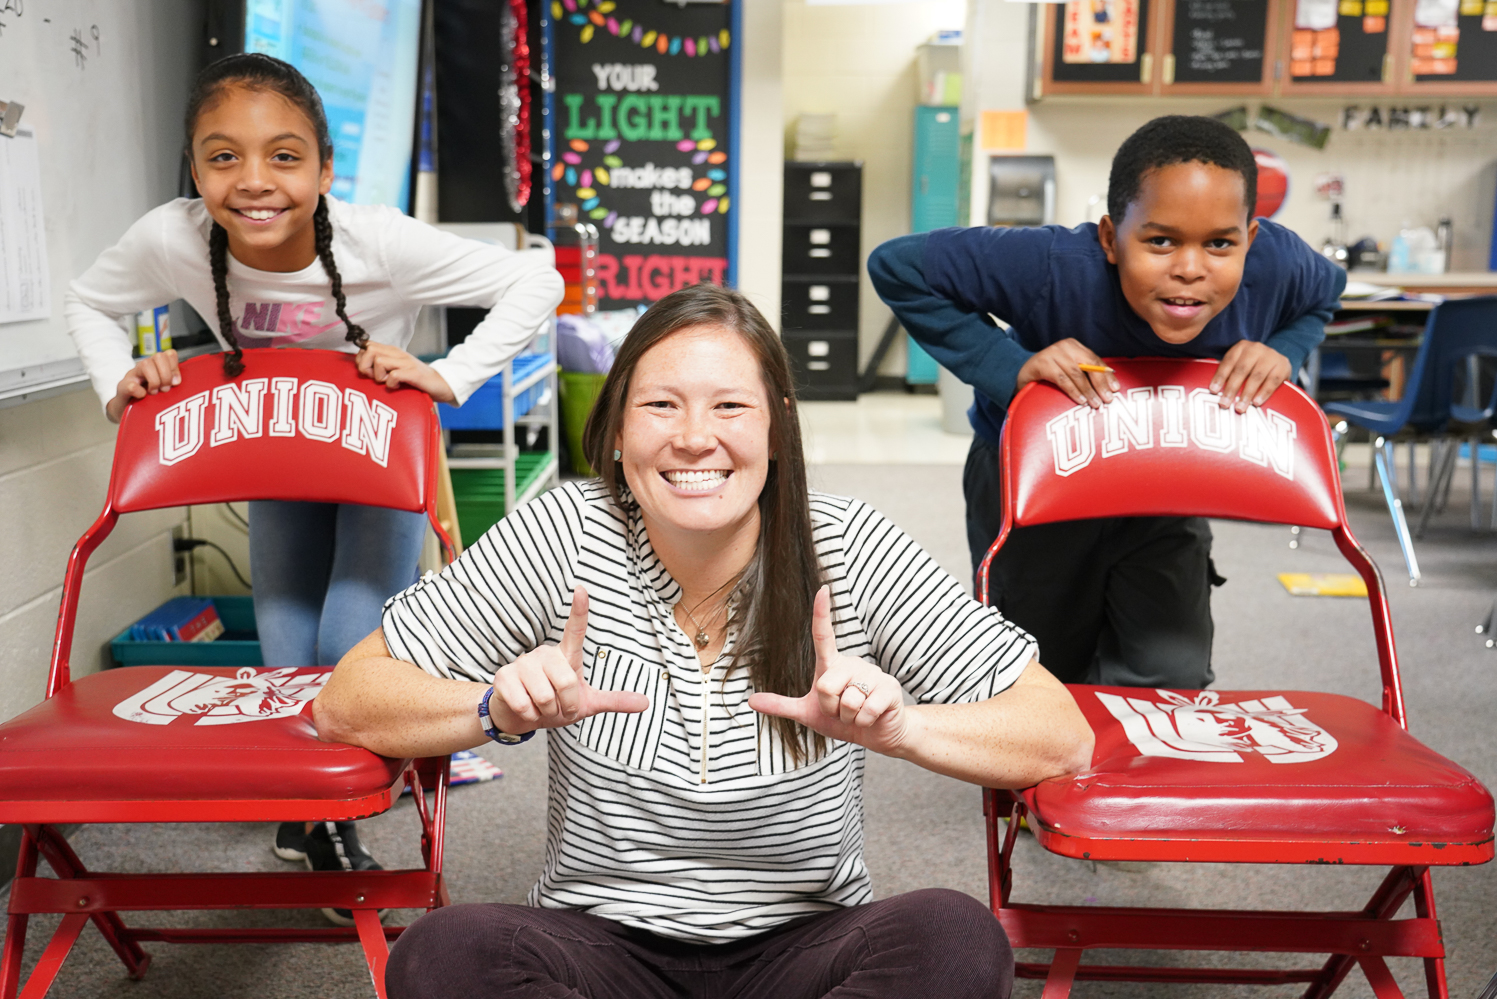 """Jarmey Dake, 4th Grade Fourth grade teacher Lacey Dake has been named the 2019-2020 Teacher of the Year for Jarman Elementary School. Dake started teaching at Union Public Schools in 2010 at what used to be the Union Intermediate High School. Furthermore, she said, """"I am a Union Lifer! I went to Grove Elementary and graduated in 2006.  I graduated from Missouri State University in 2010 with my bachelor's of science in elementary education. I am also certified in early childhood Education. Dake said, """"I became a teacher to make a difference in children's lives – to know they have someone in their corner rooting them on through life.  I love working with kids.  I hope to inspire them and spark a love for learning just as my past educators did for me."""" Her favorite subject to teacher is math. """"I love that math is universal!  I enjoy using manipulatives and playing games to help students grasp the many mathematical concepts in fourth grade.""""  One could say that Dake's love for students and Union just adds up!"""